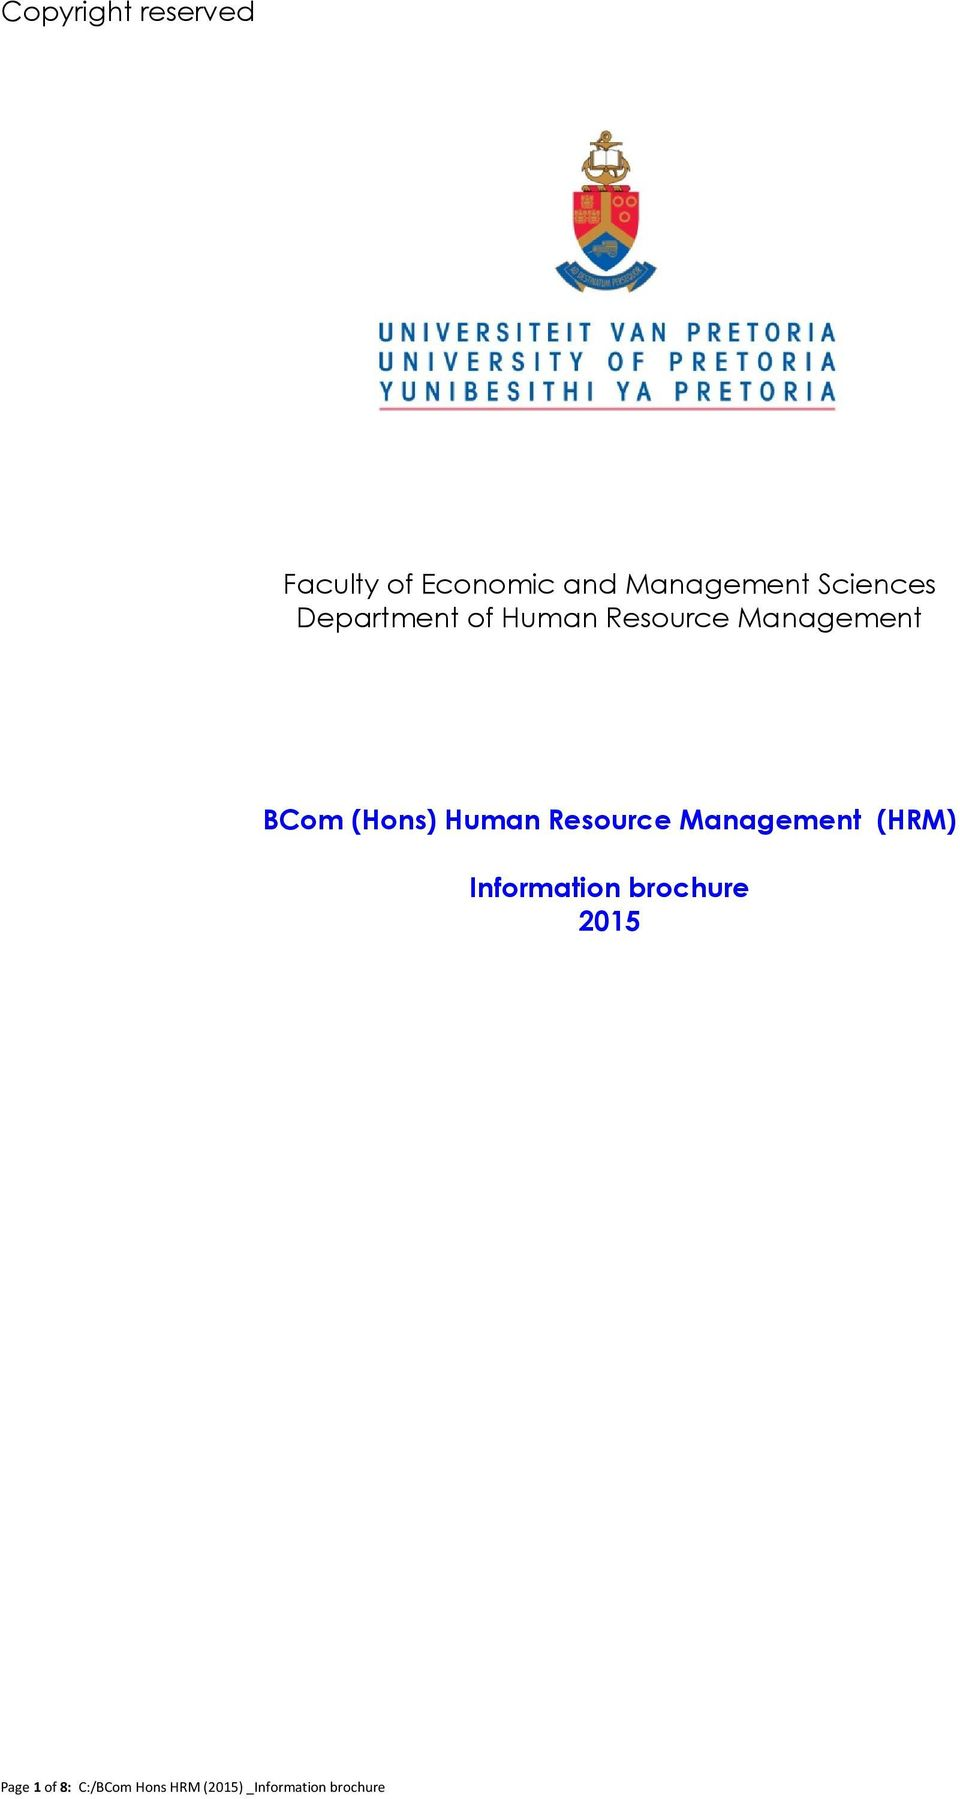 (Hons) Human Resource Management (HRM) Information